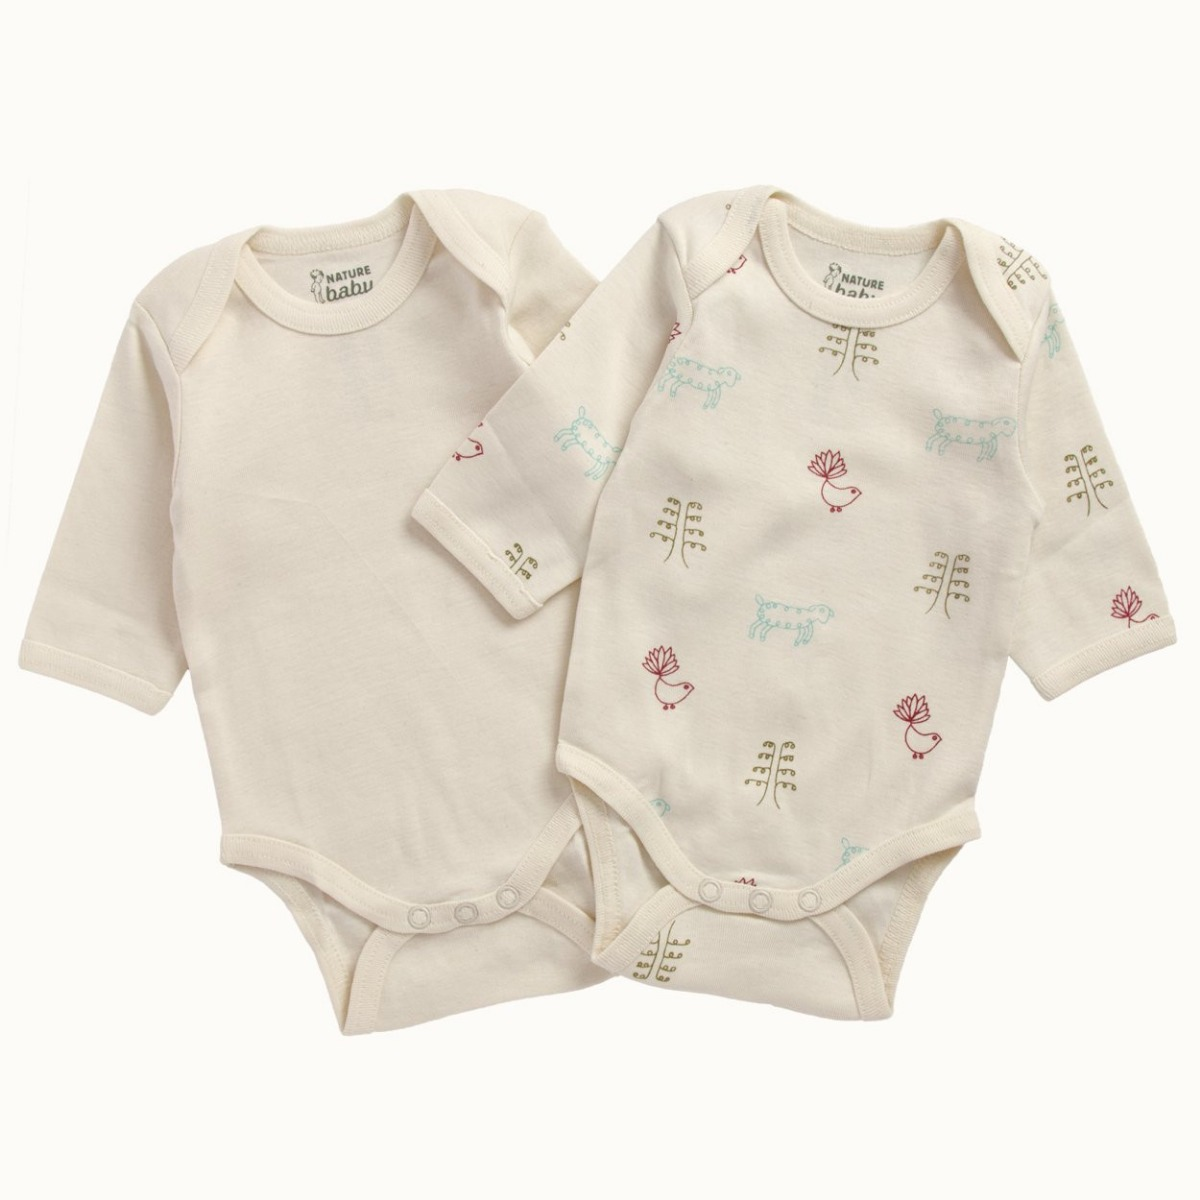 Nature Baby Organic Cotton 2 Pack Bodysuit 0-3M